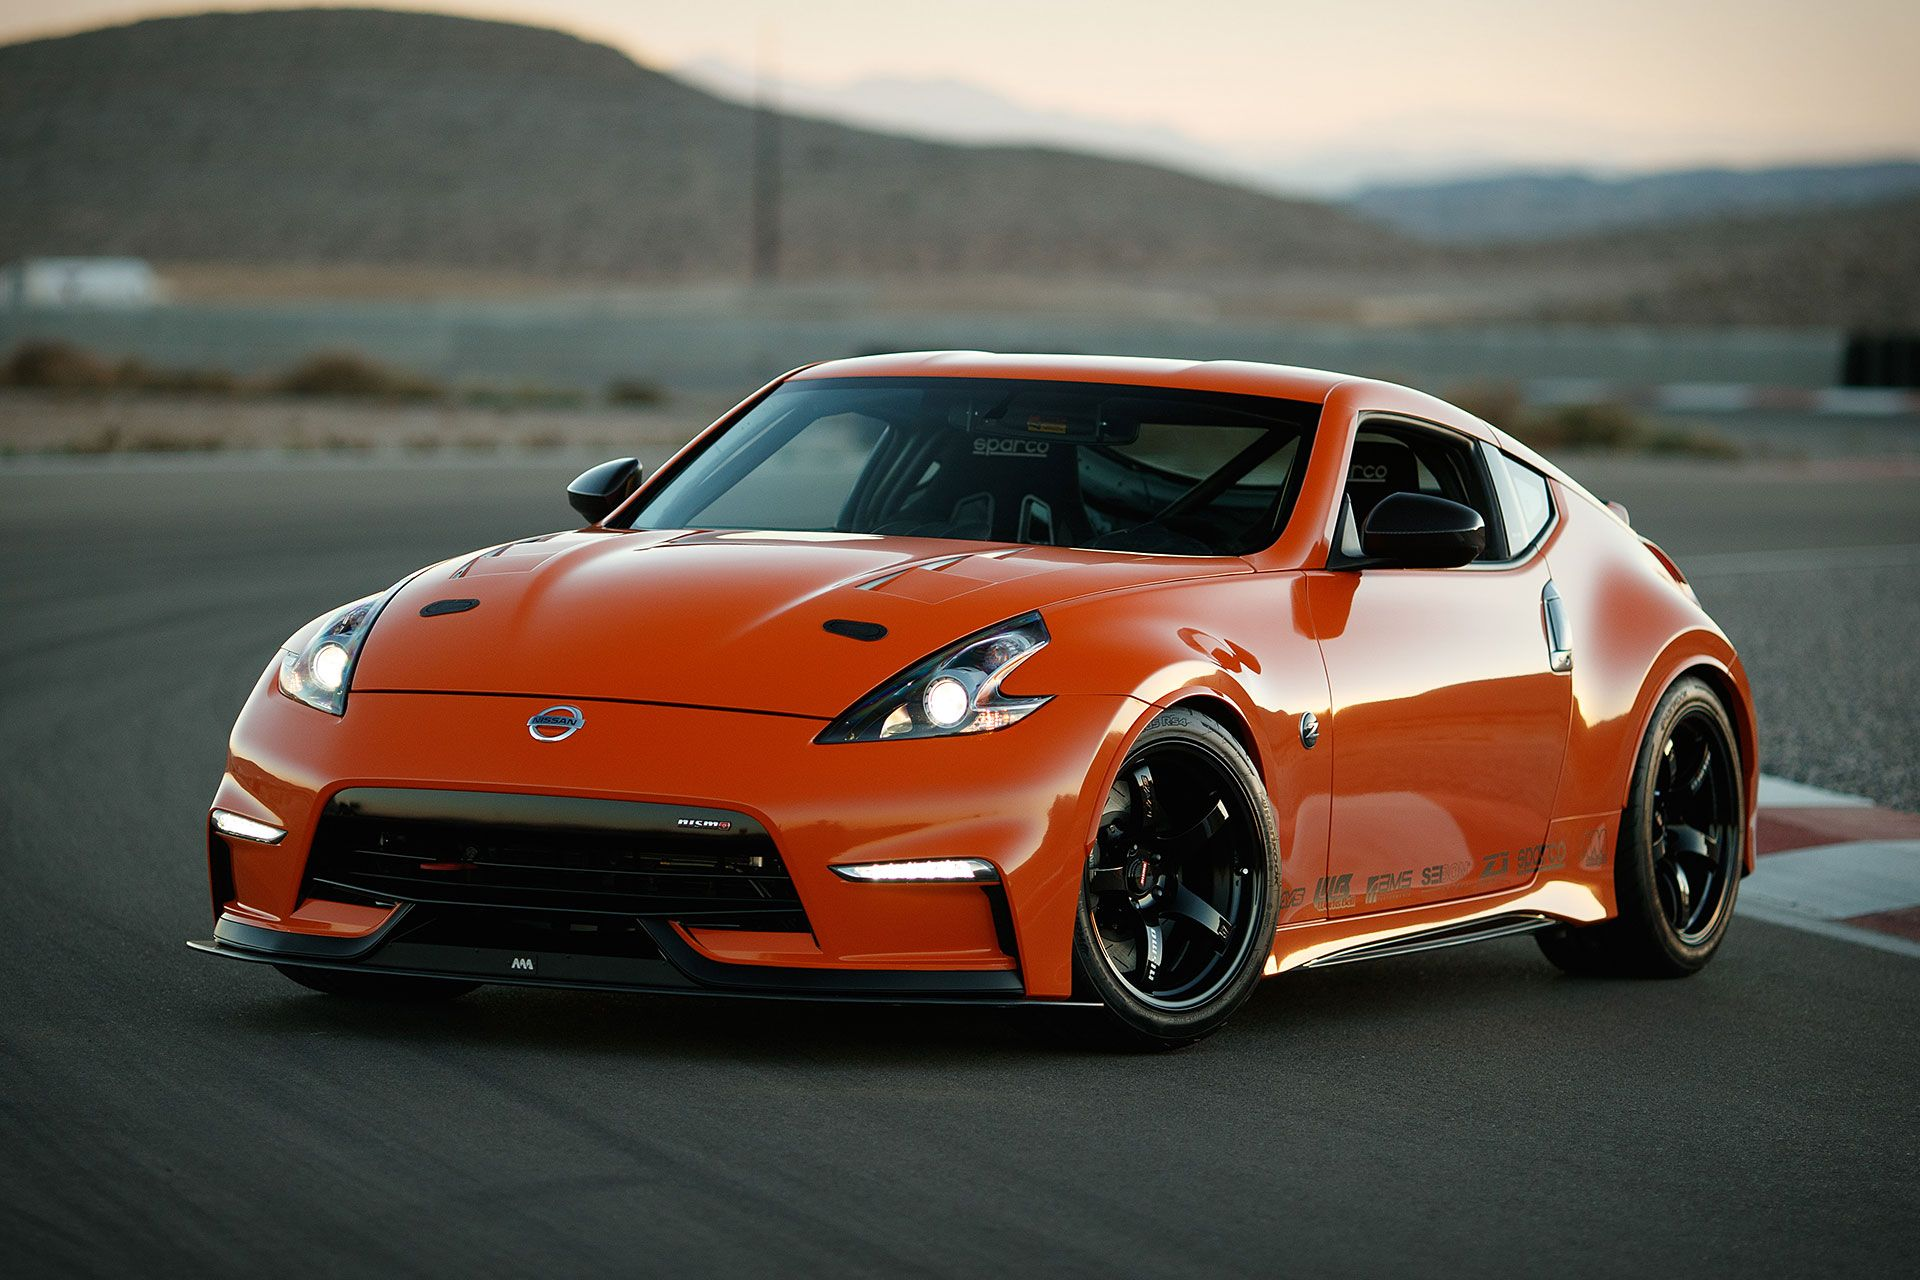 Nissan 370z Project Clubsport 23 Coupe In 2020